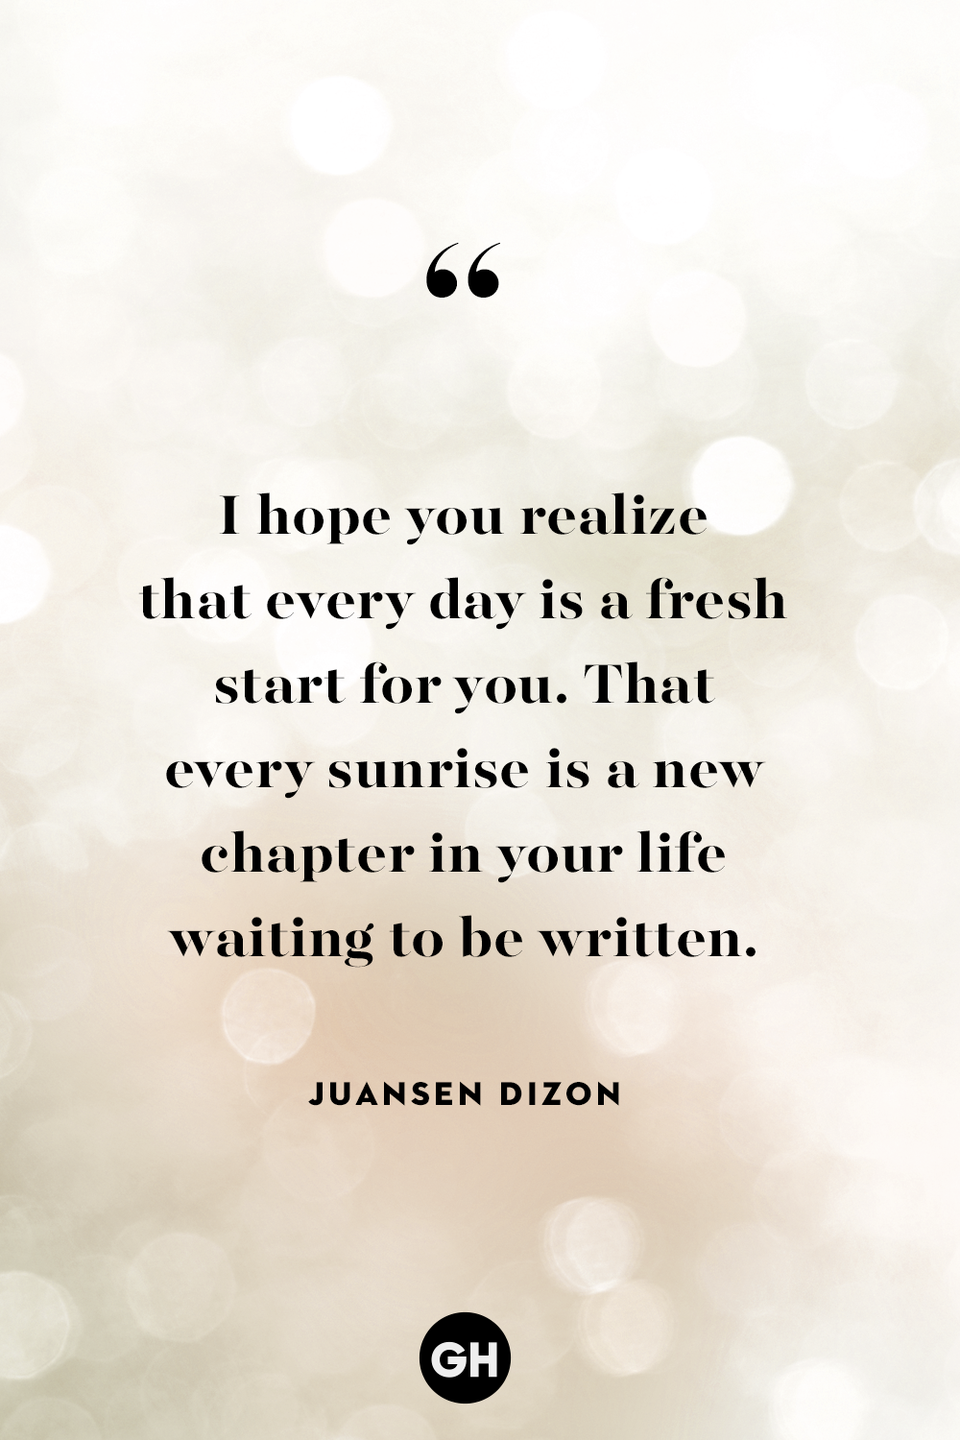 <p>I hope you realize that every day is a fresh start for you. That every sunrise is a new chapter in your life waiting to be written.</p>